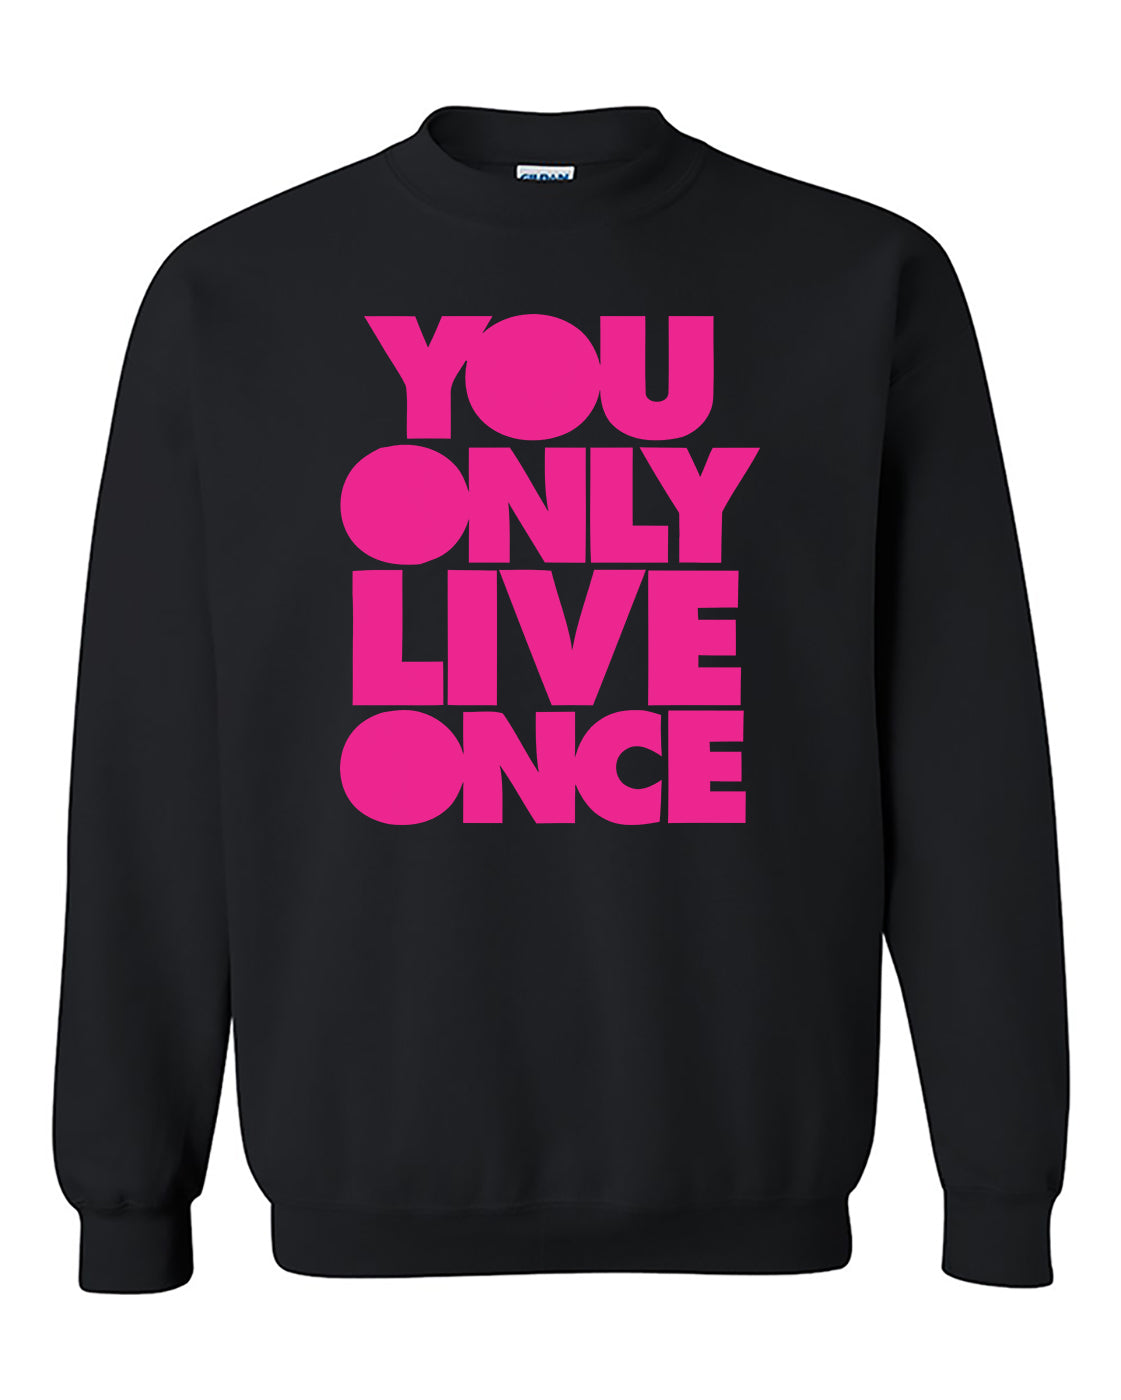 YOLO, You Only Live Once Pink Cute, Fashion, Funny Crewneck Sweater